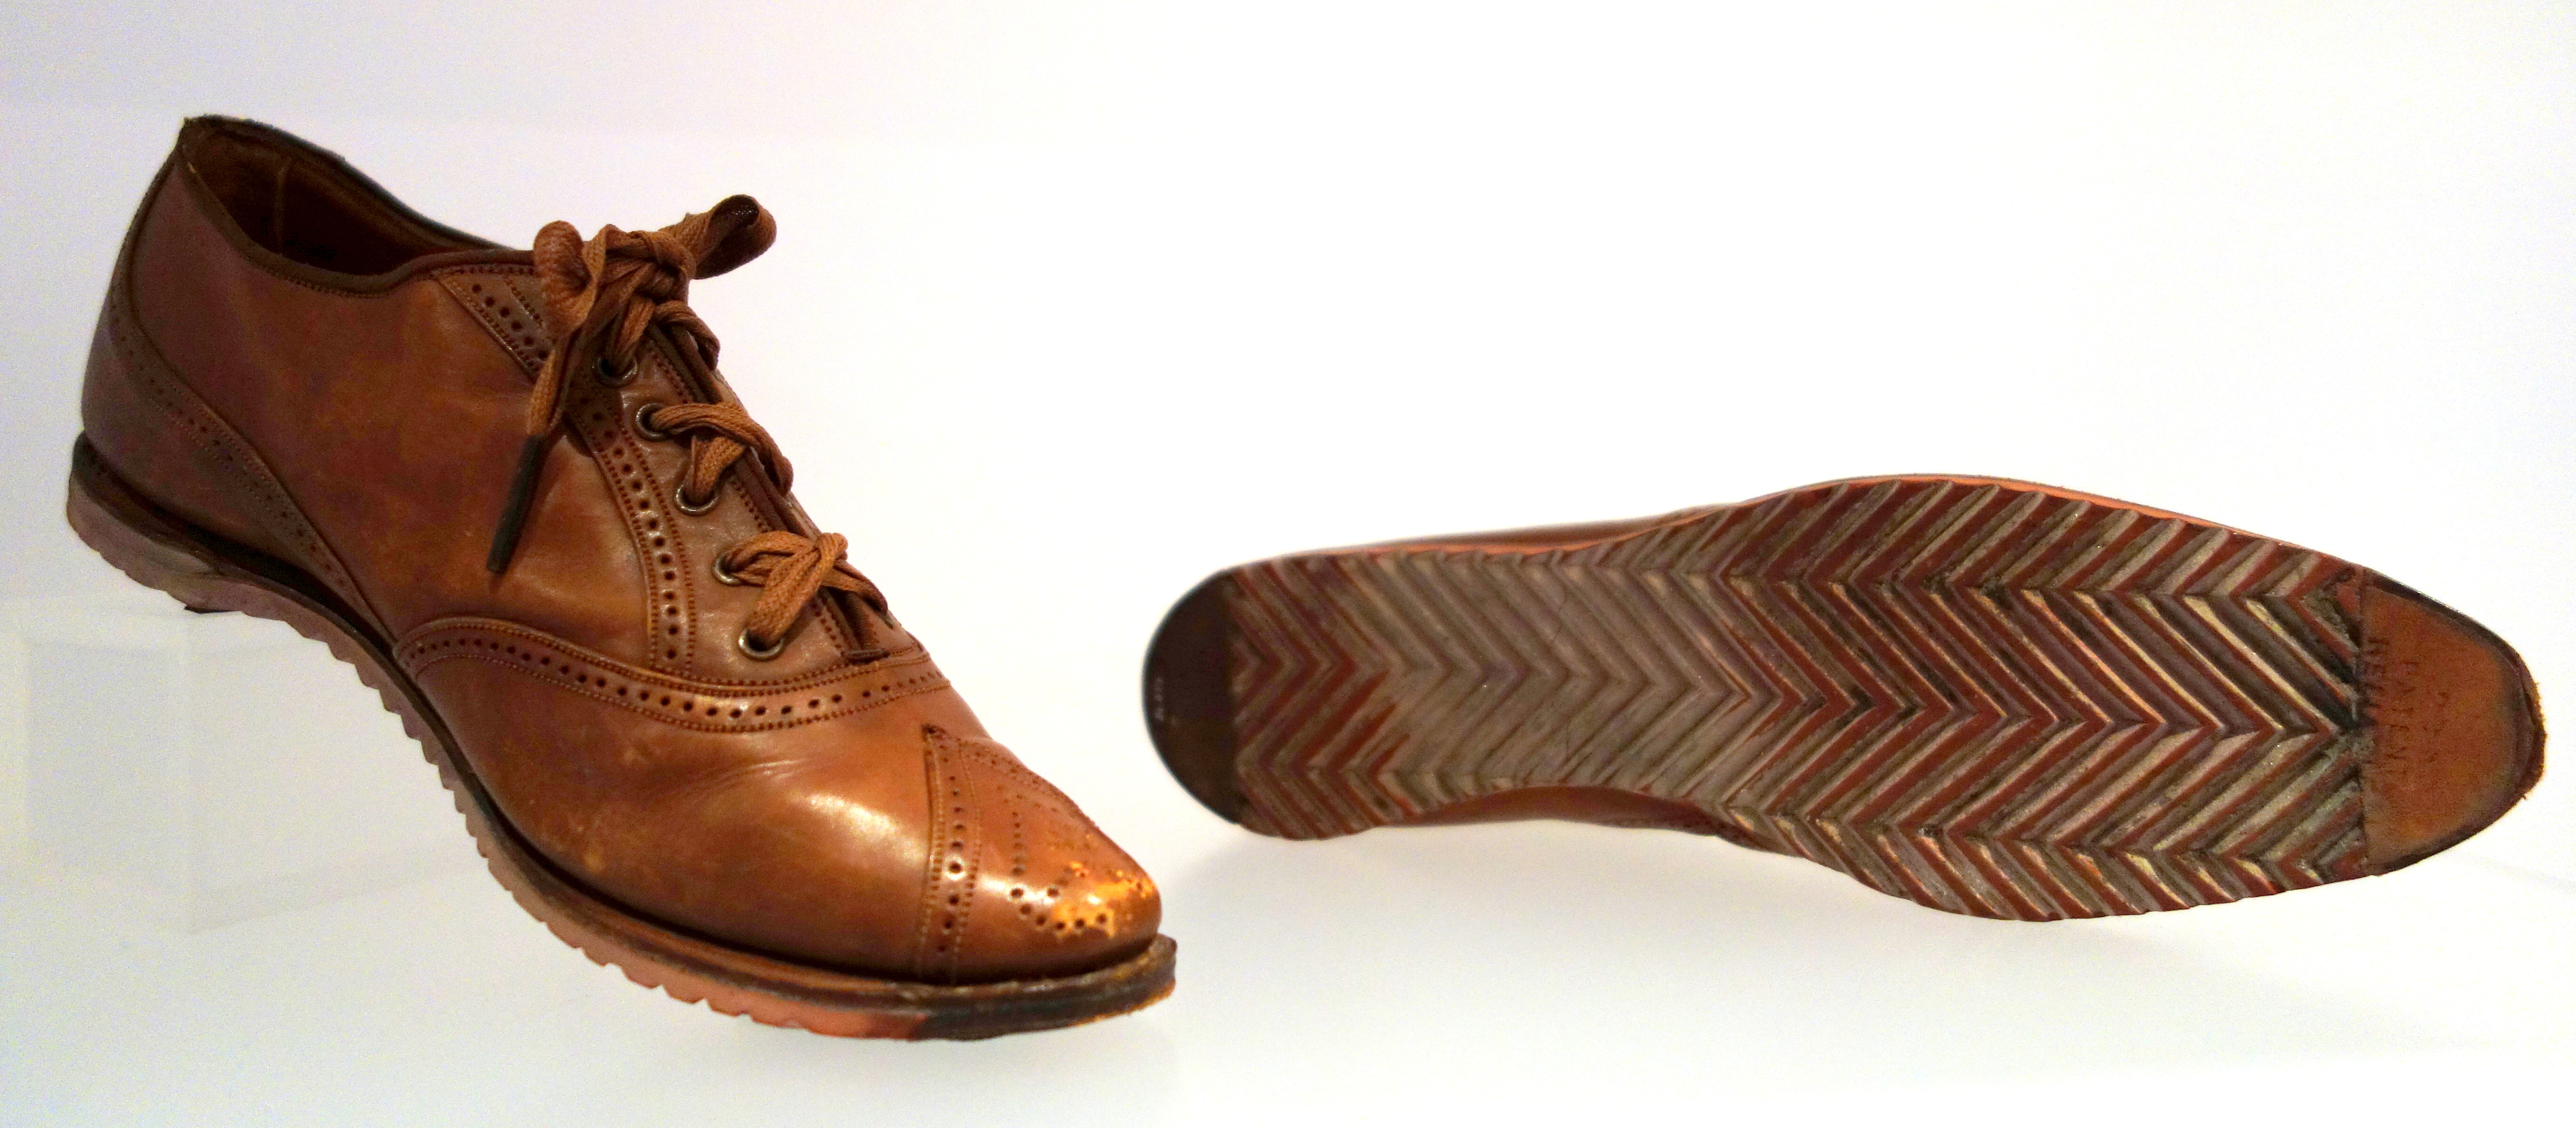 bata shoes organization Brief history of the company the business that became the bata shoe organization was established on august 24, 1894 in zlin, czechoslovakia by tomas bata, and included his brother antonin.